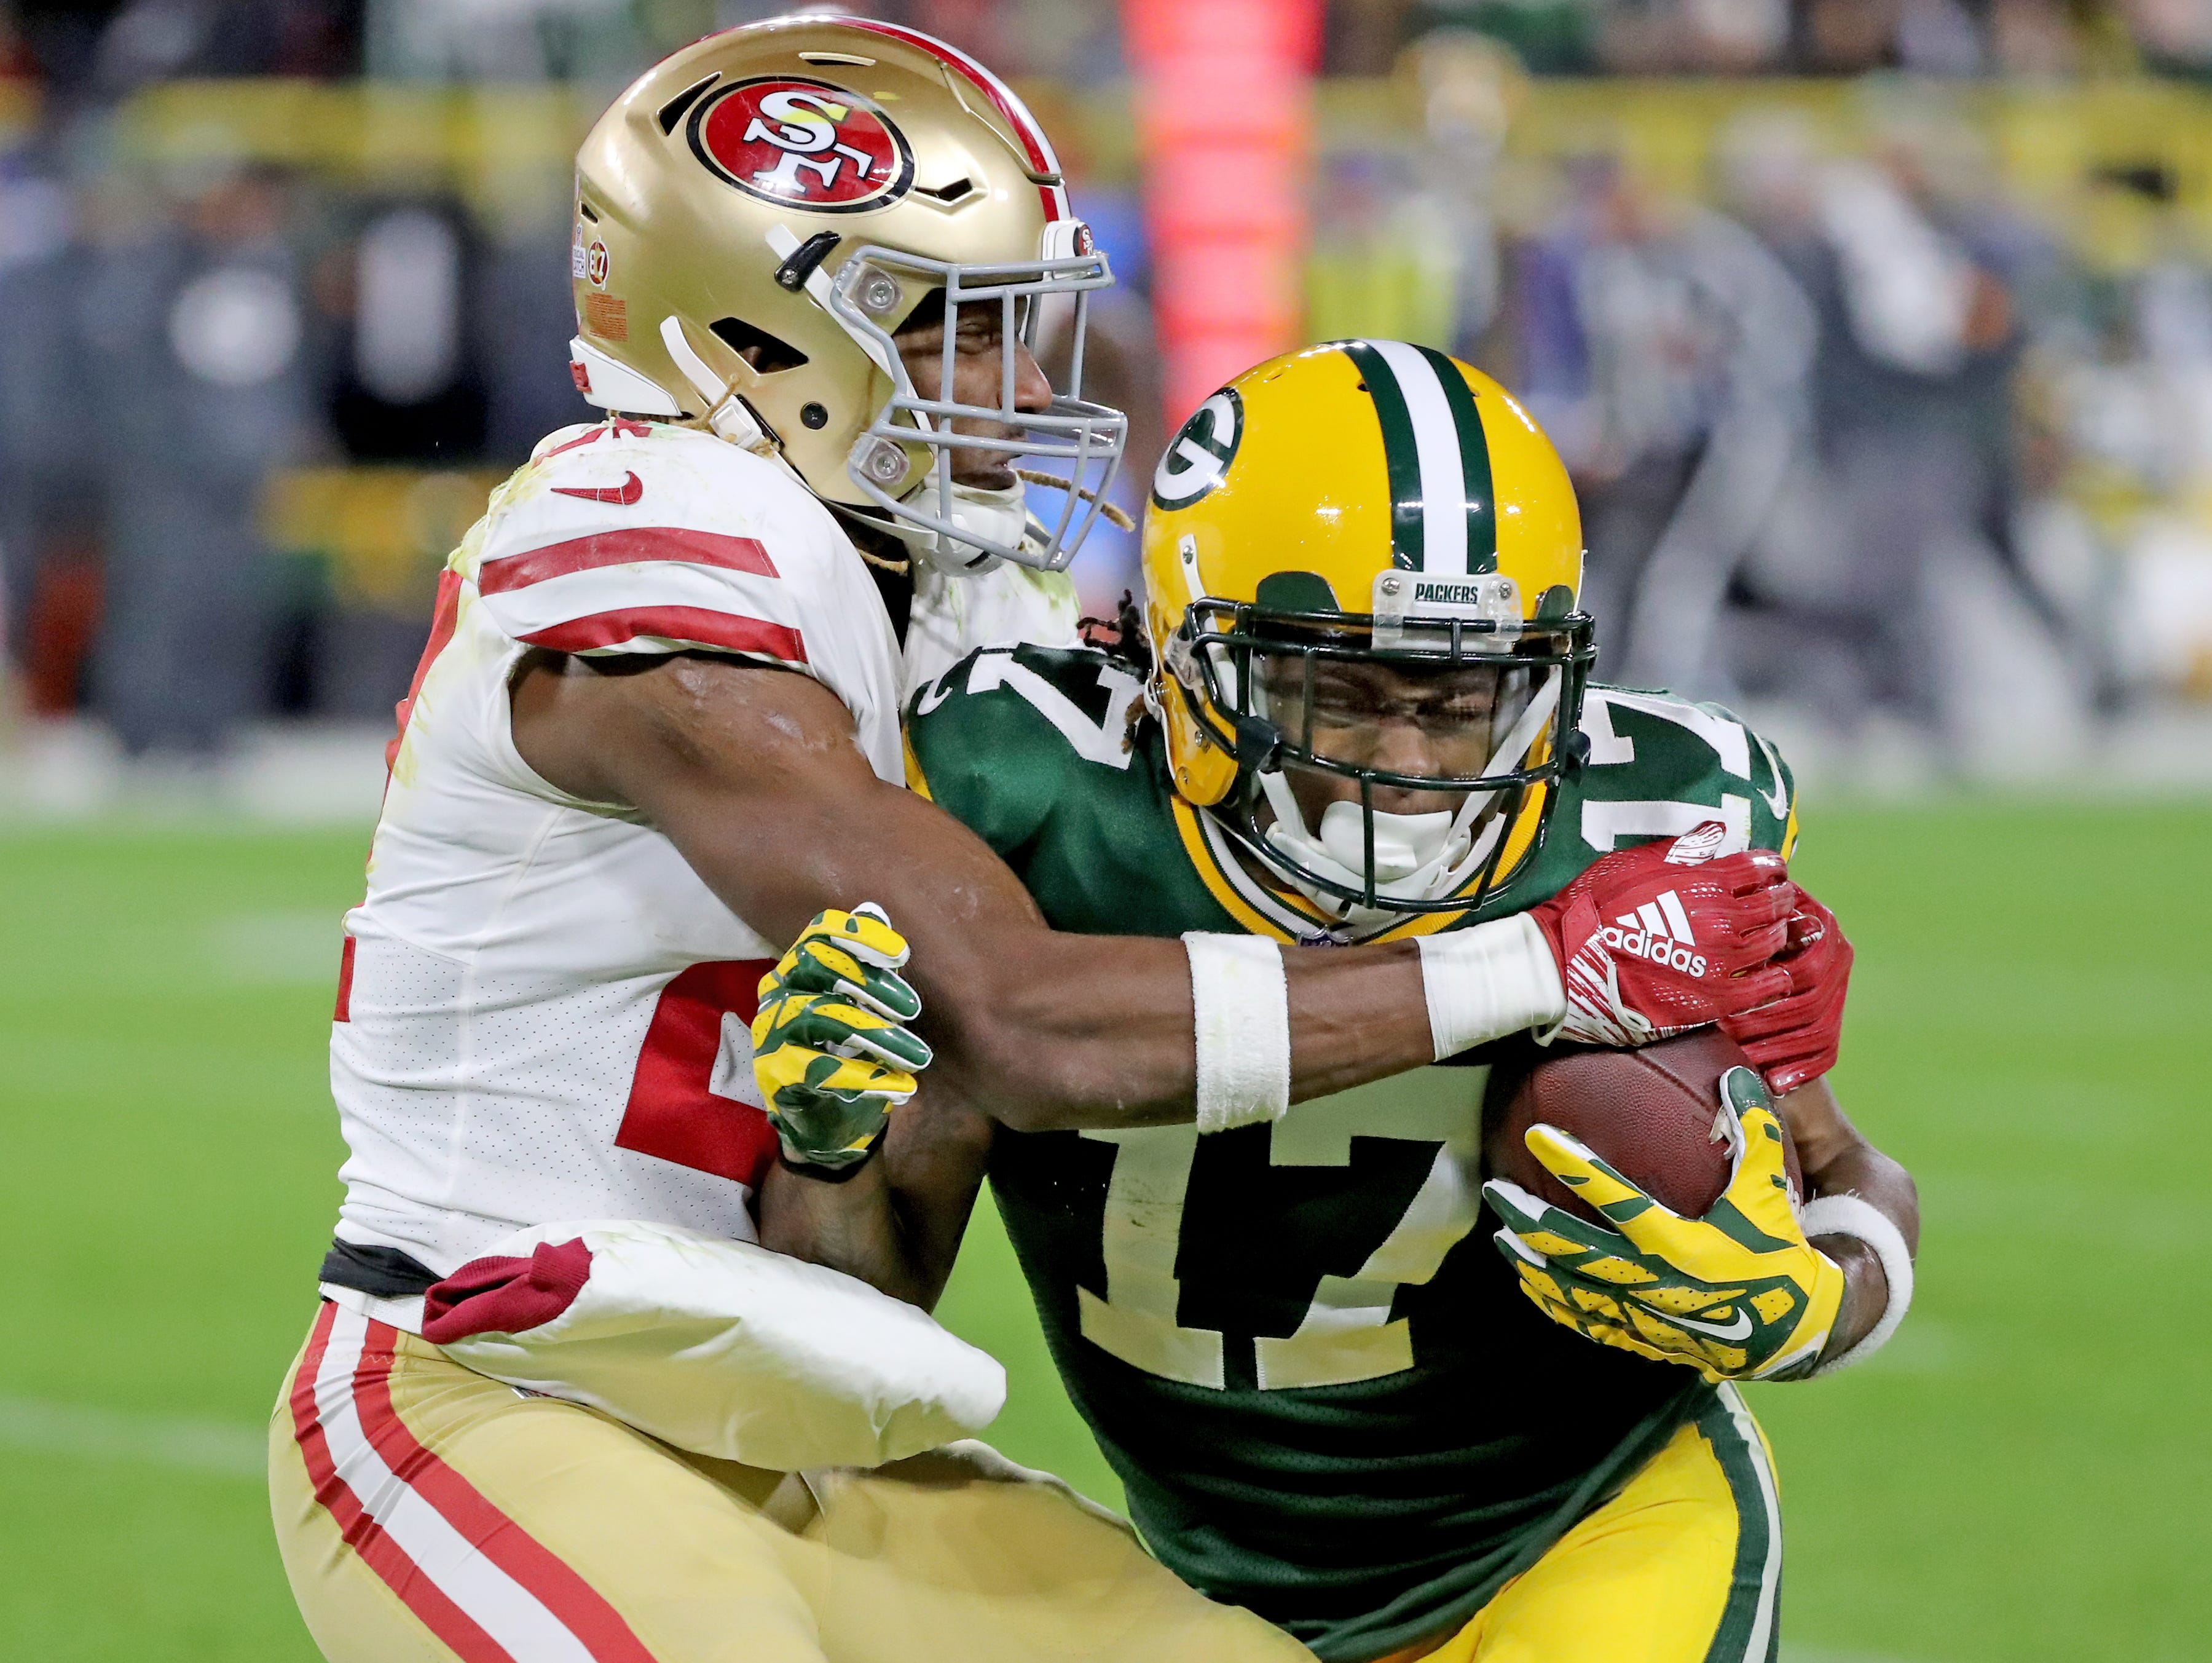 Green Bay Packers wide receiver Davante Adams (17) collides with free safety Adrian Colbert (27) against the San Francisco 49ers at Lambeau Field Monday, October 15, 2018 in Green Bay, Wis.